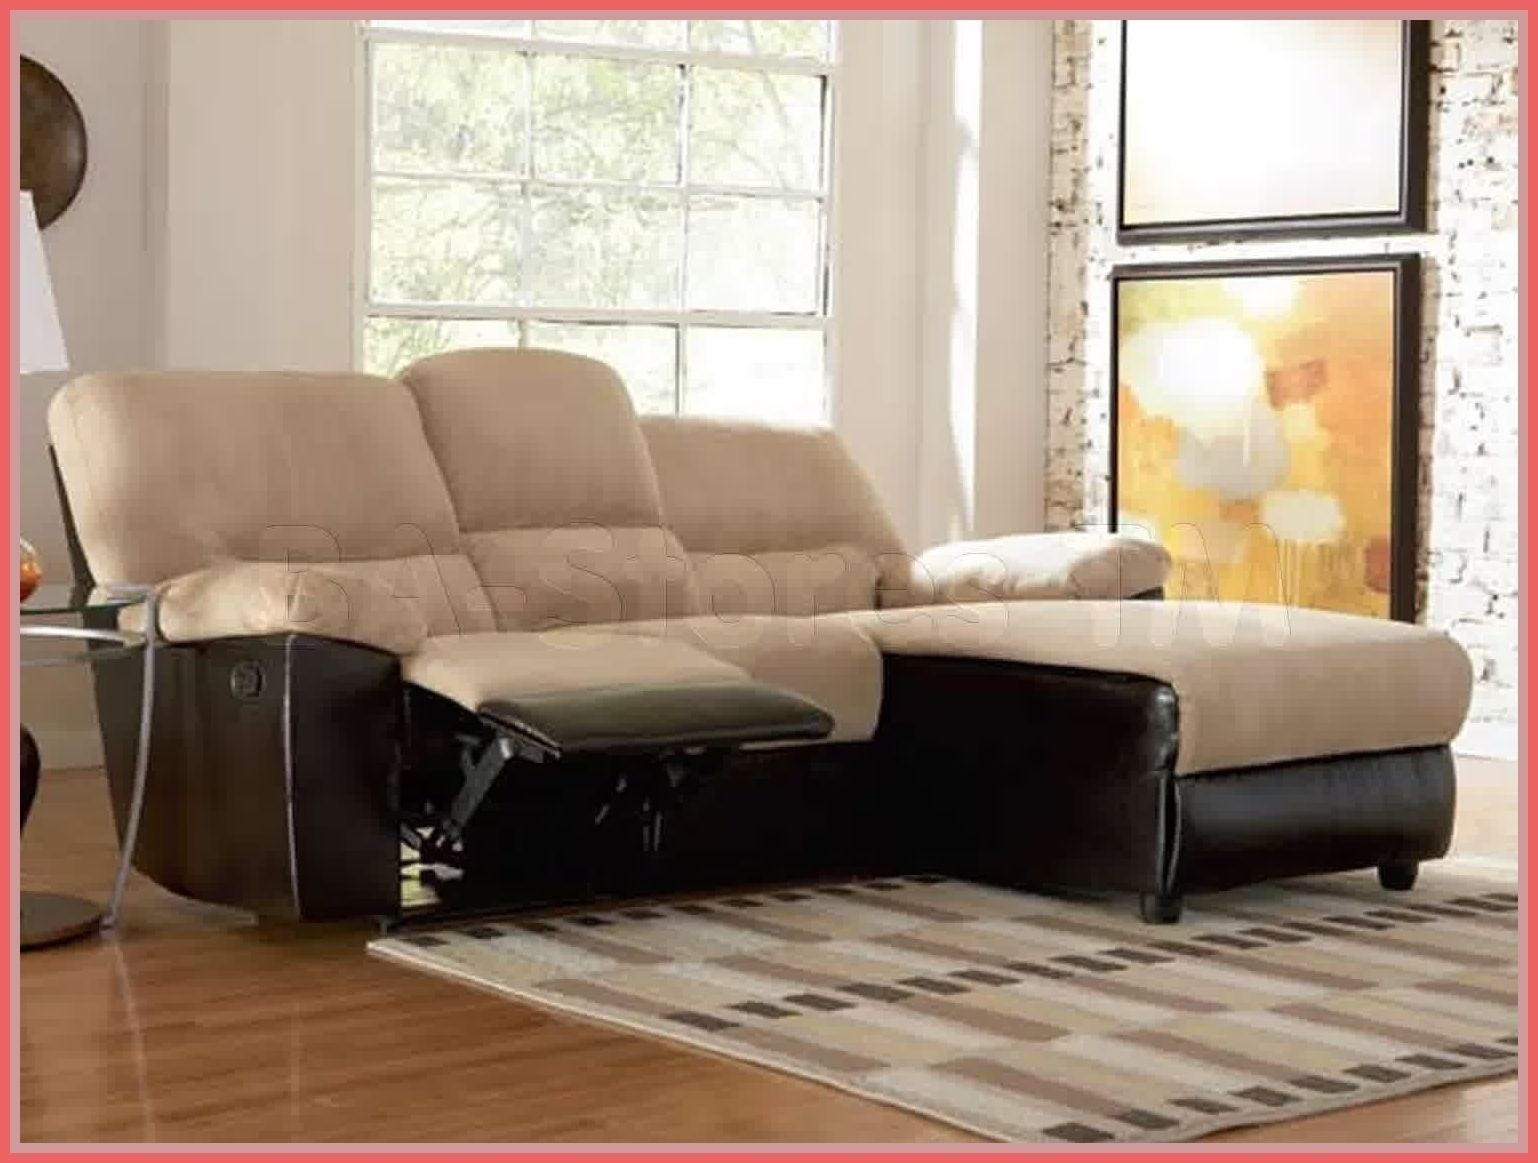 Awesome Reclining Sofas For Small Spaces